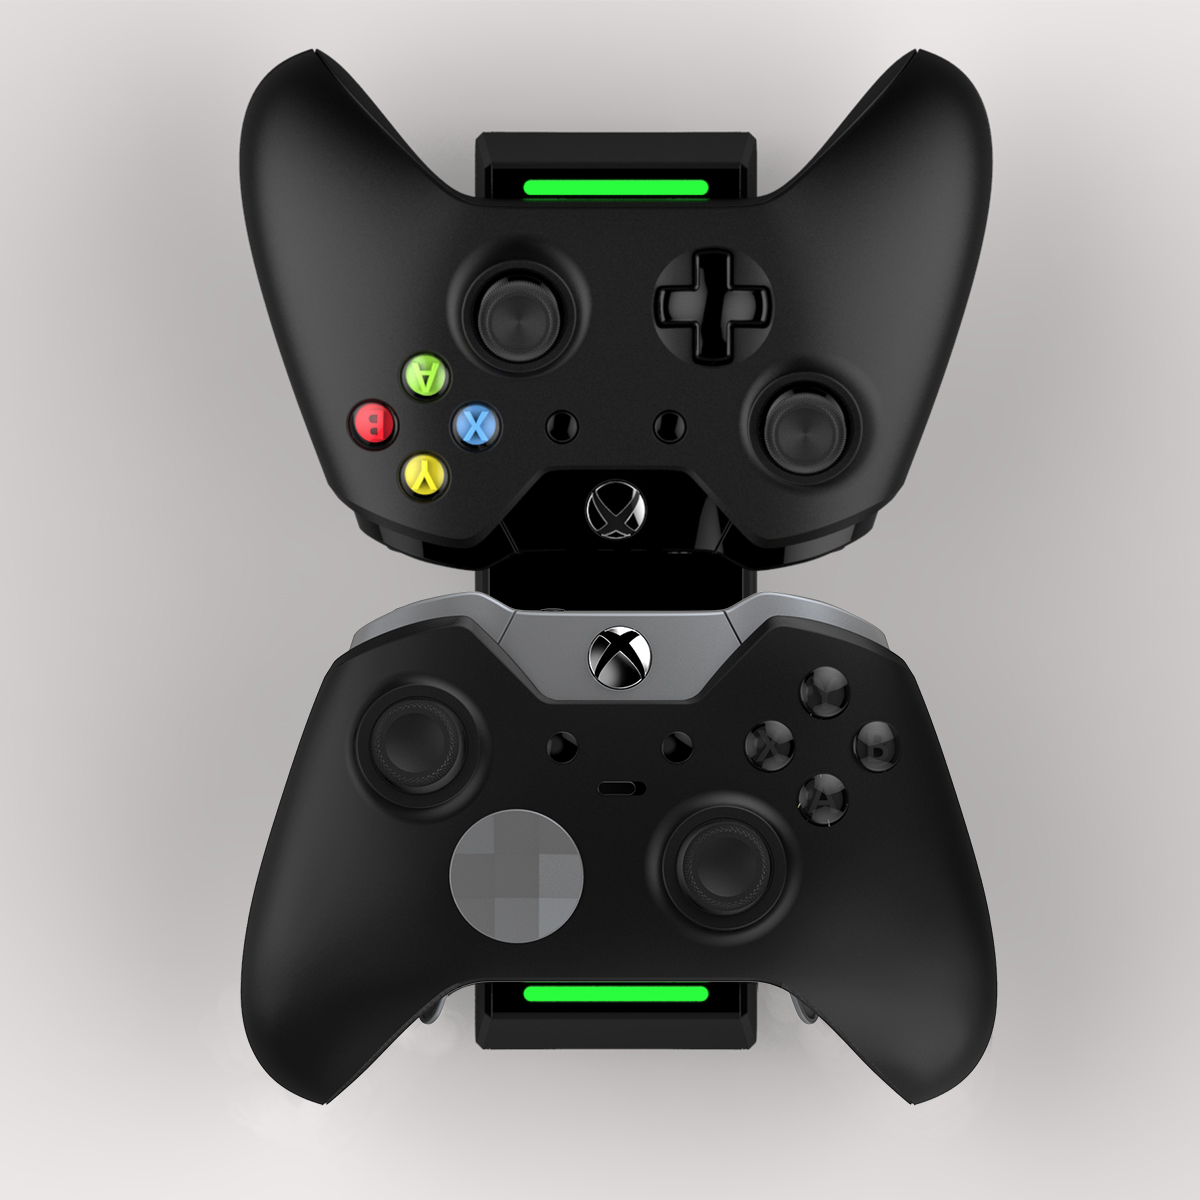 CY-352020 top view with gamepads